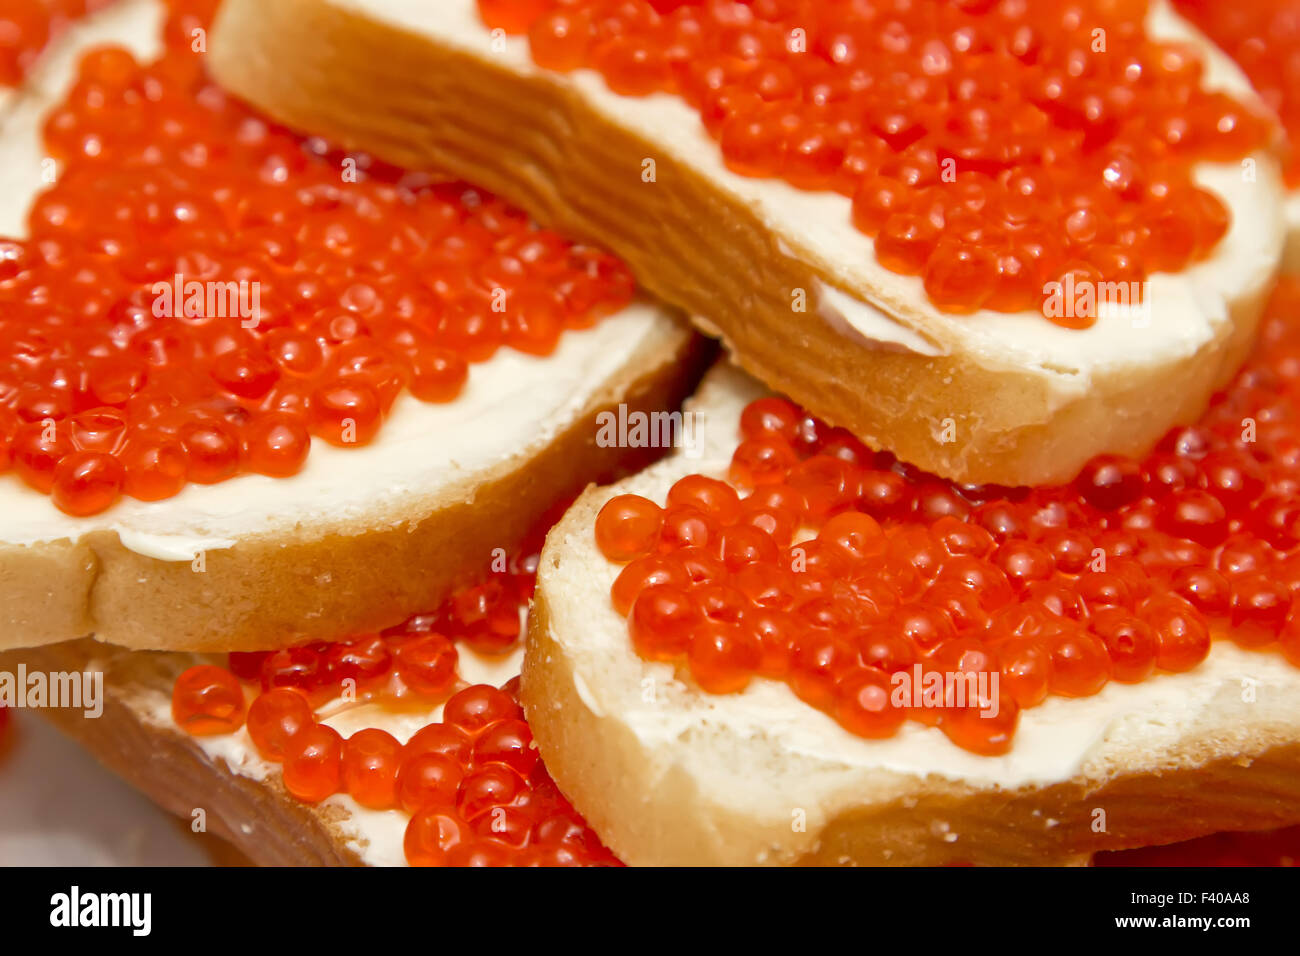 Sandwiches with red caviar - Stock Image